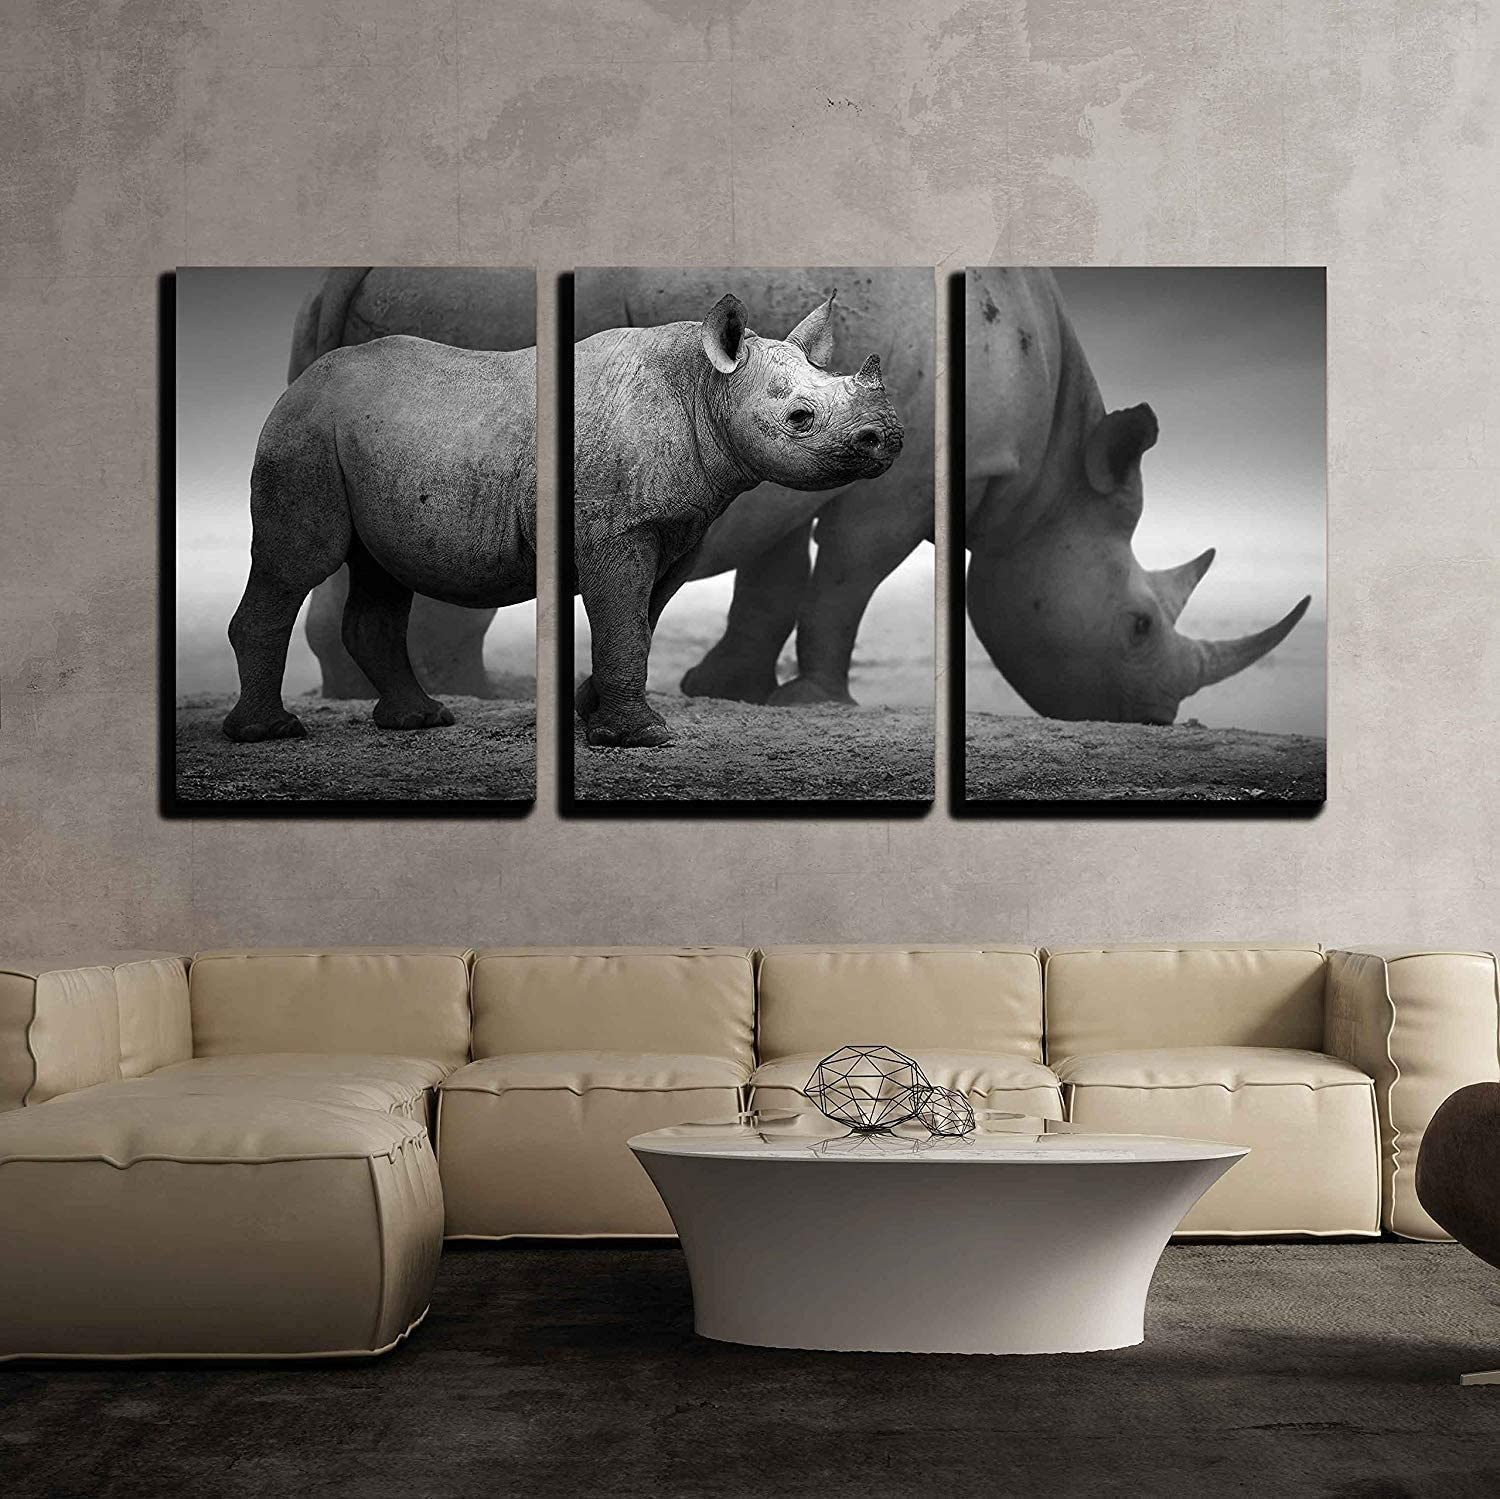 """wall26 - 3 Piece Canvas Wall Art - Black Rhinoceros Calf (Diceros Bicornis) Standing with Cow at a Waterhole - Modern Home Decor Stretched and Framed Ready to Hang - 16""""x24""""x3 Panels"""